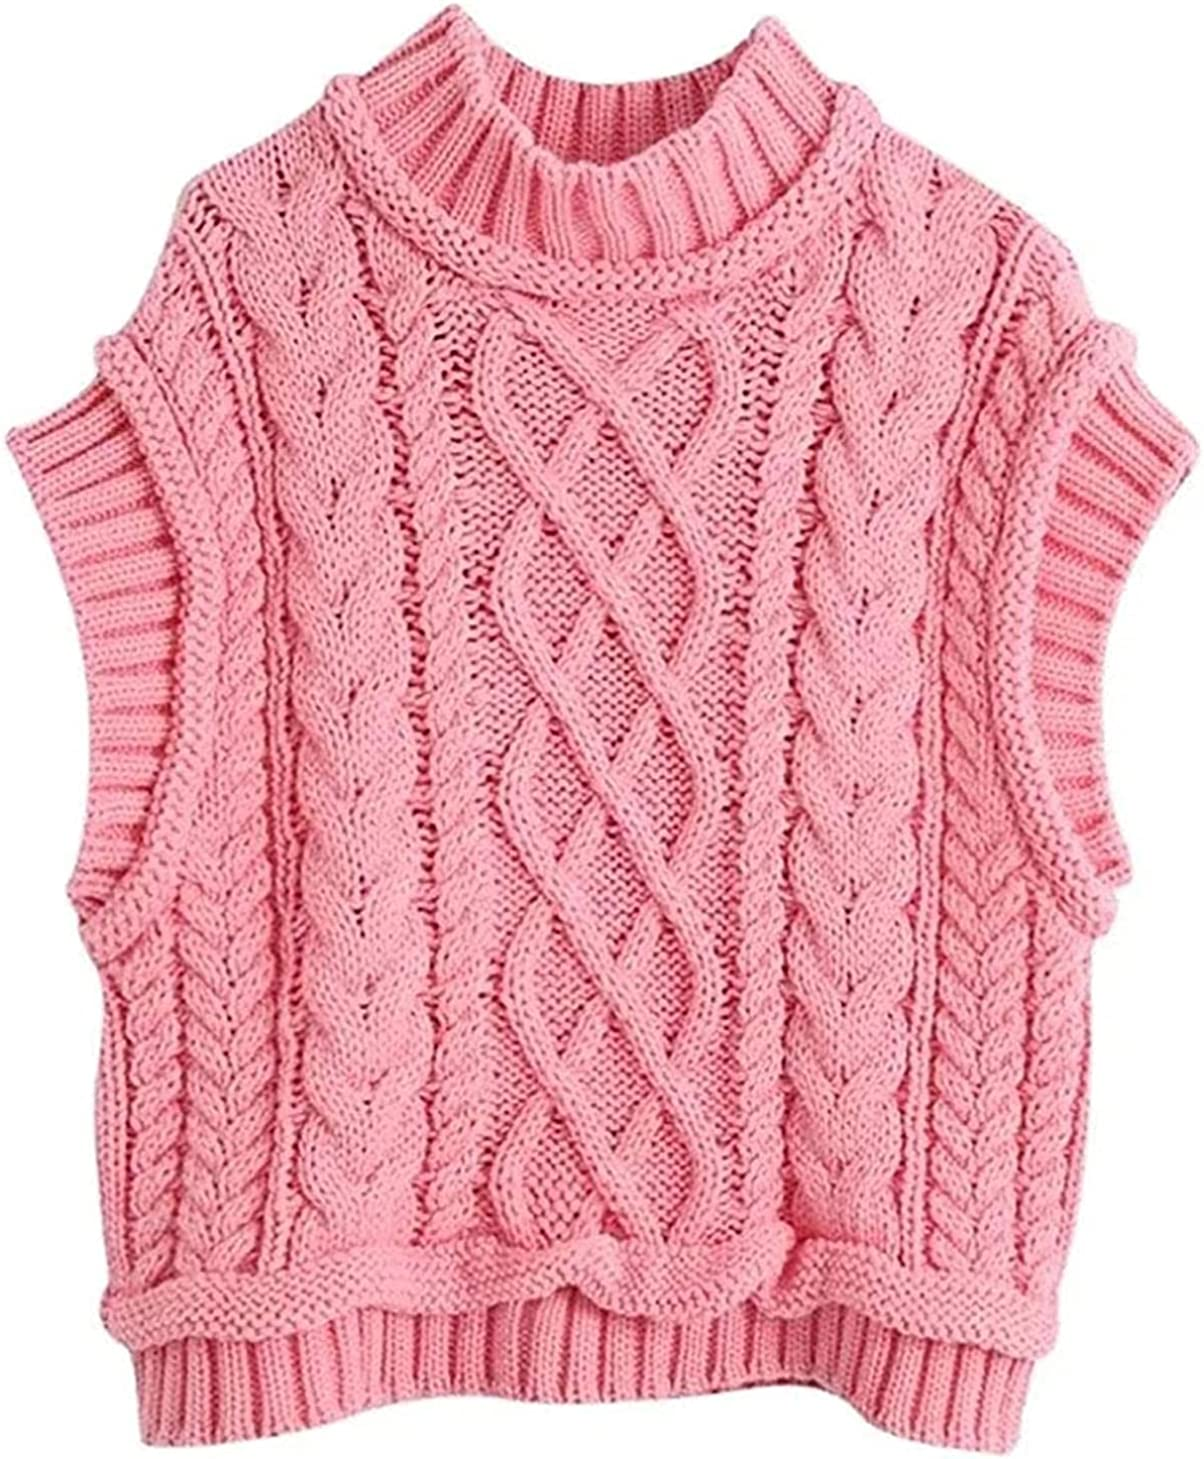 Women Fashion All stores are sold O Neck Solid Sleevel Sweater Max 61% OFF Knitting Female Twist